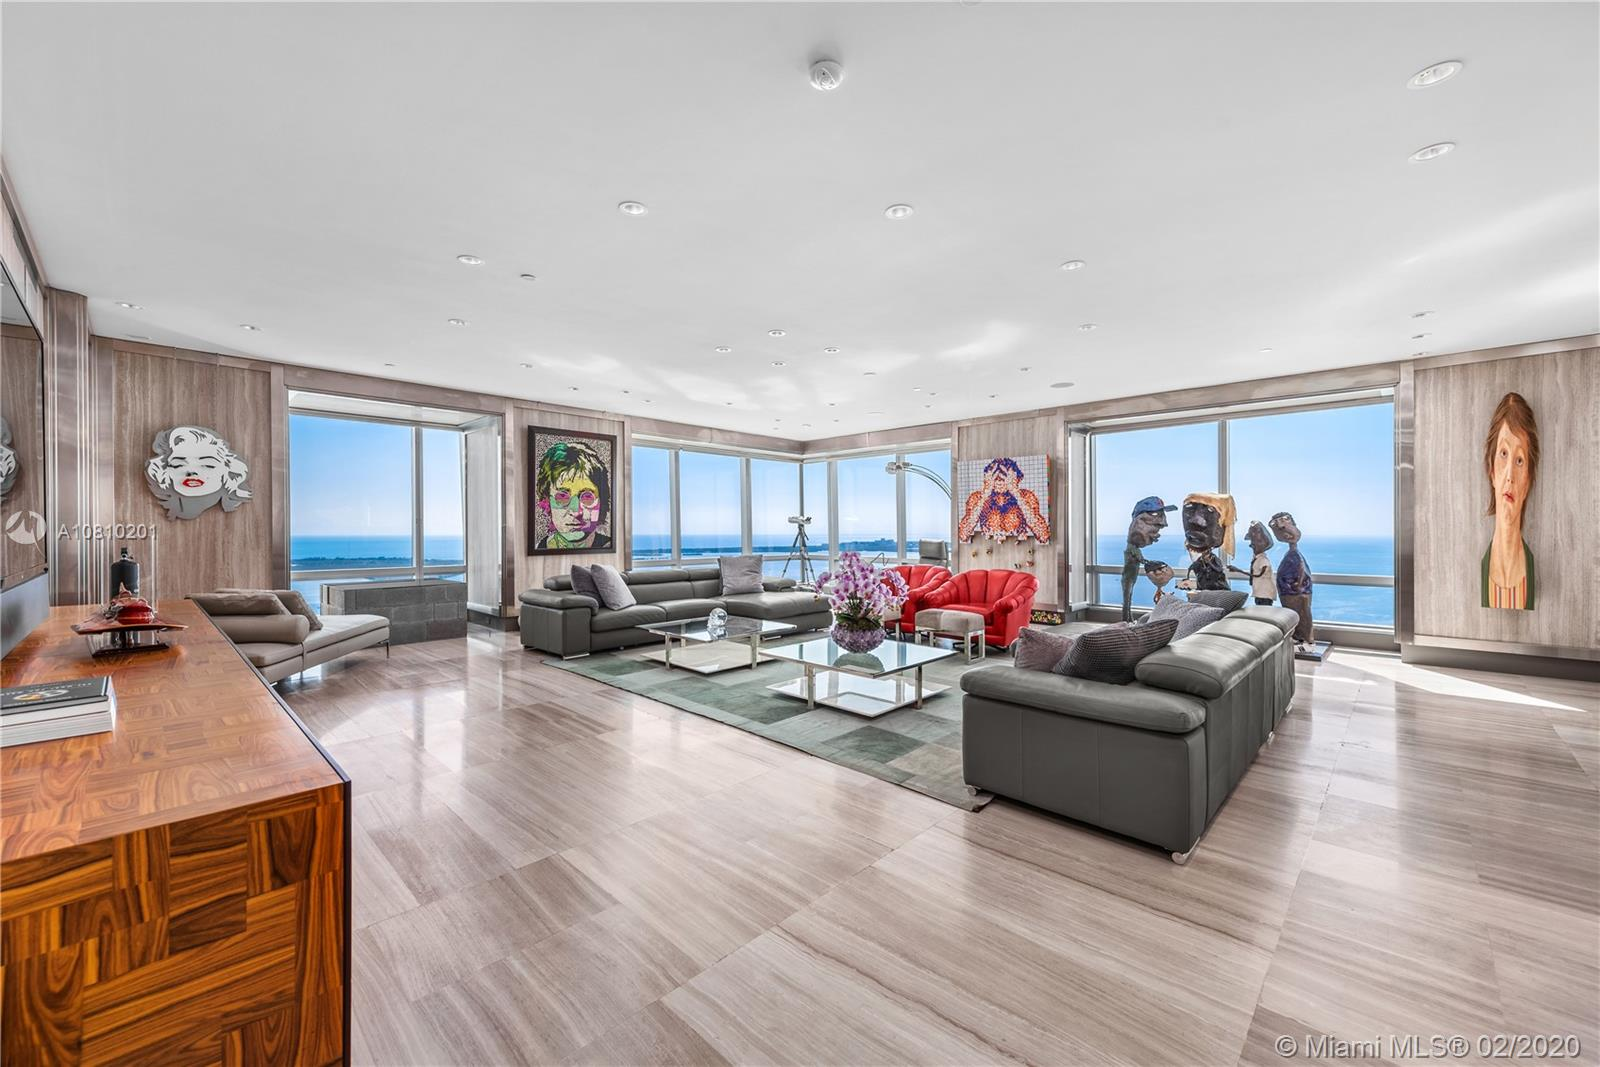 Live at the world class Four Seasons Residences in this home in the sky in the rarely available f line. Soaring 62 stories high, the views truly take your breath away. Exquisitely sophisticated finishes and sweeping views of Downtown Miami, Biscayne Bay and the Atlantic ocean, this 3,582 sf residence boasts dramatic stone walls, 2 private balconies, custom-designed gourmet kitchen, a fabulous principal walk-in closet that resembles a high-end boutique, bathrooms with floor-to-ceiling marble, and views from every room. Enjoy living at the top of the world at one of Miami's most exclusive addresses. Four Seasons amenities include: doorman, 24hr valet, concierge, in-residence housekeeping, Equinox fitness center, spa, pool and electric car charging stations.